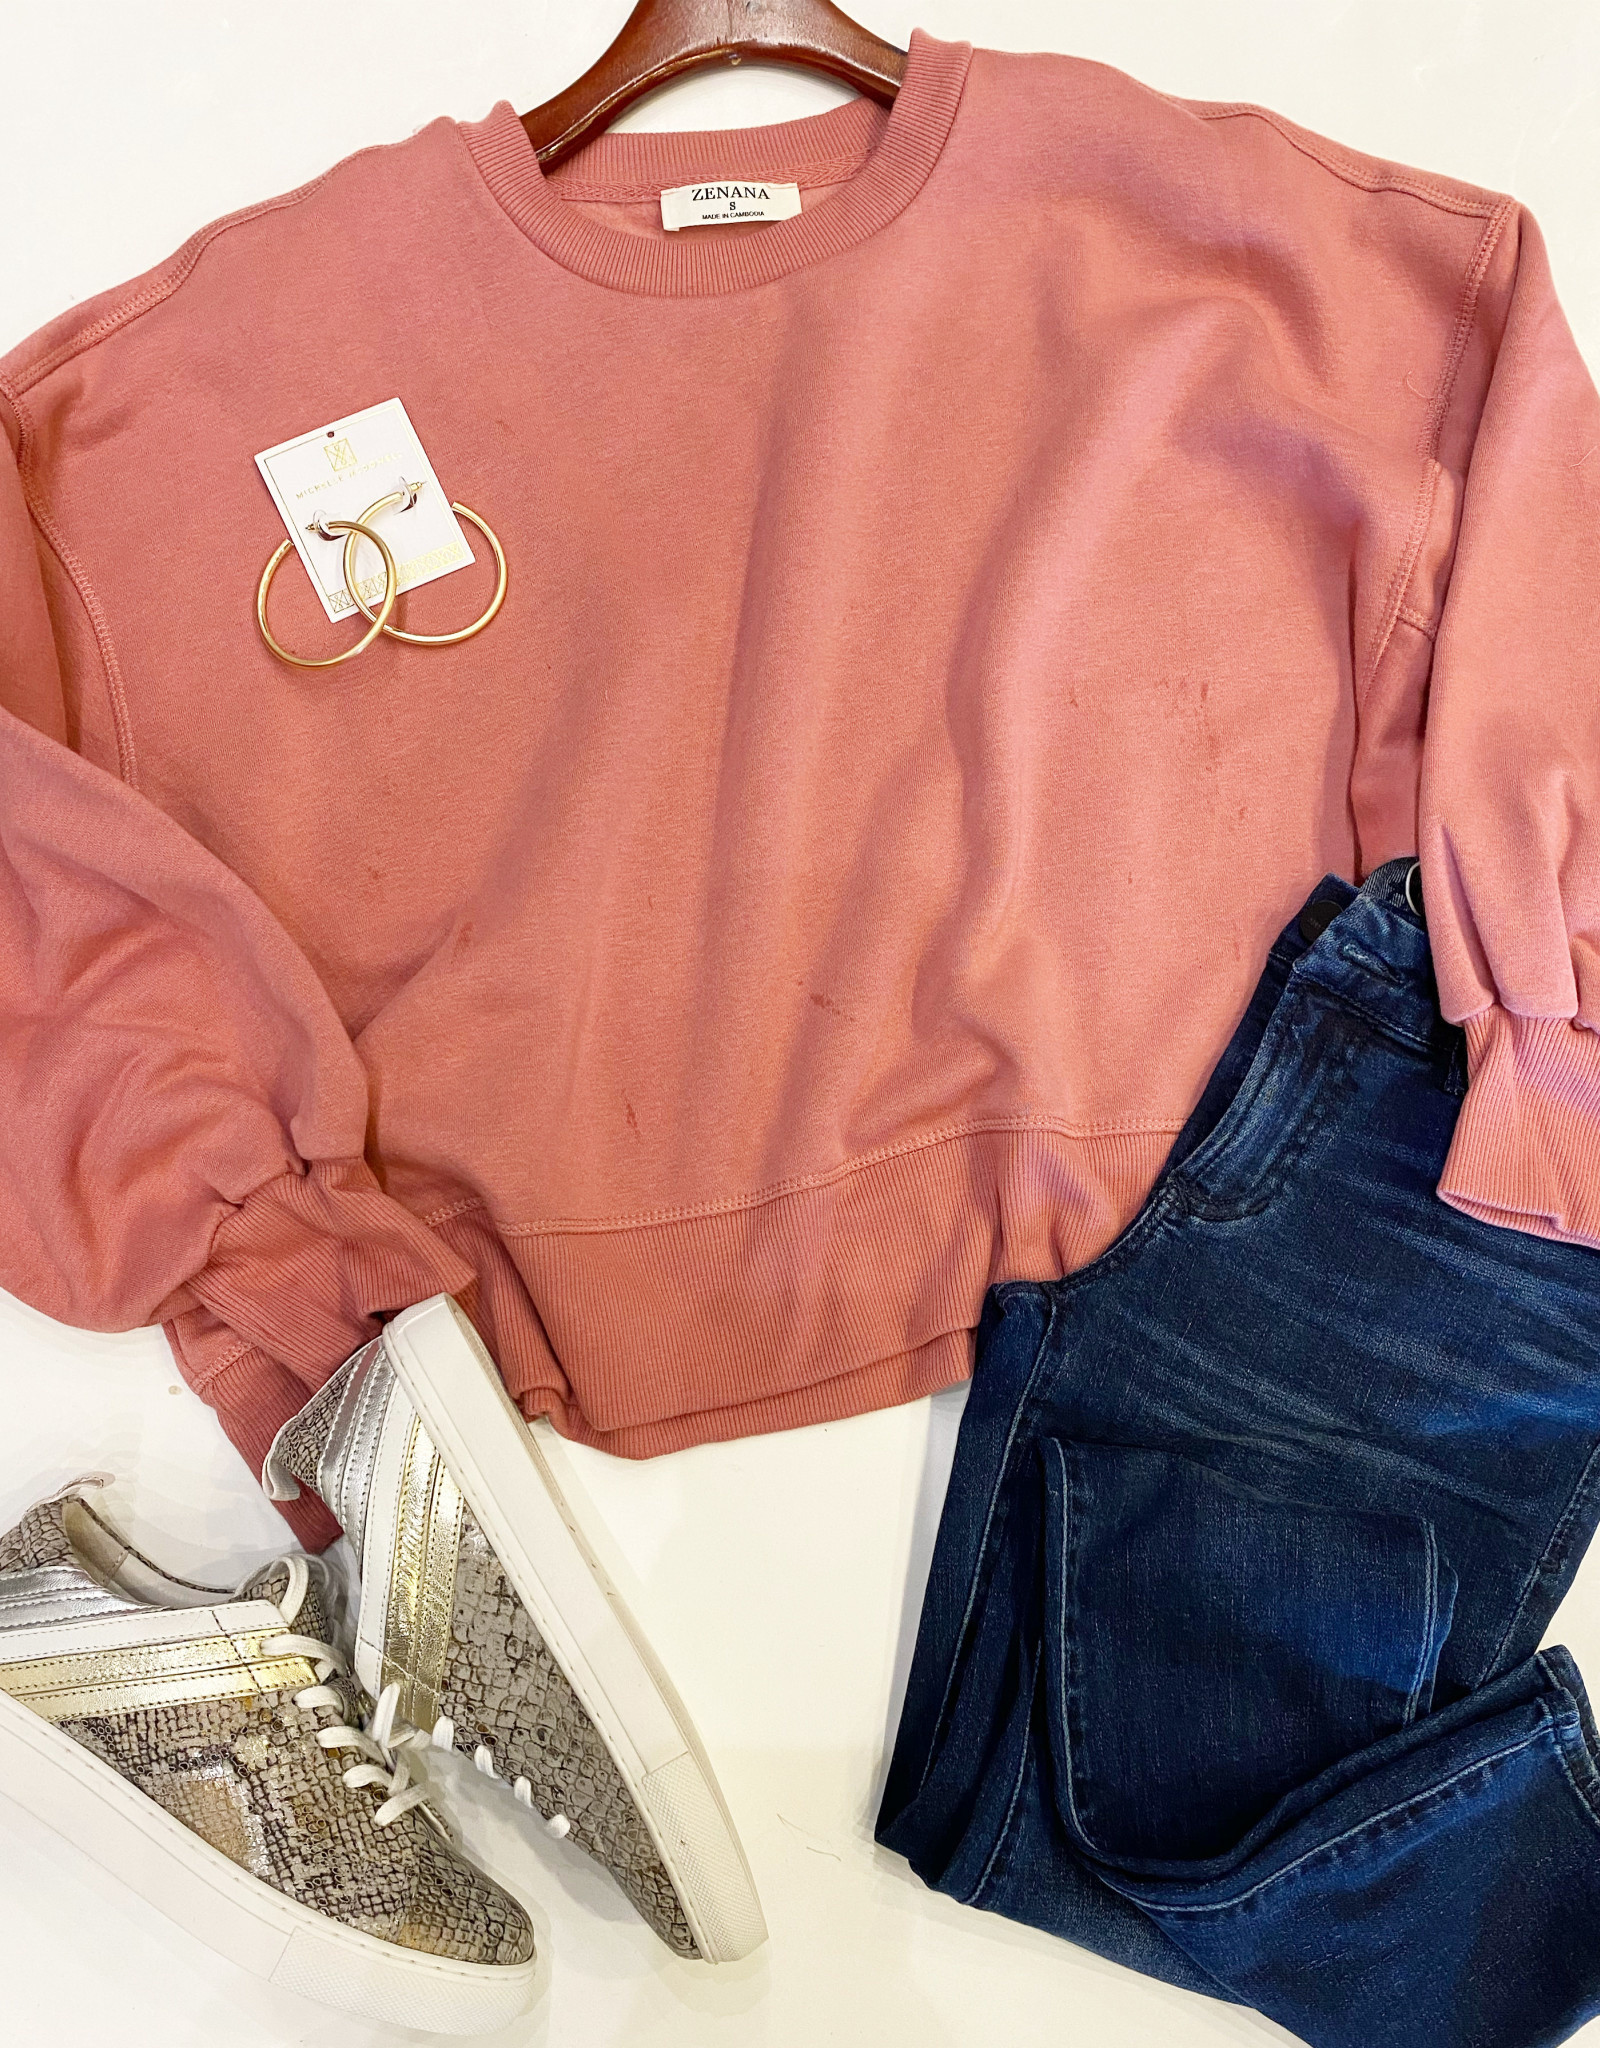 Zenana Cropped Pullover